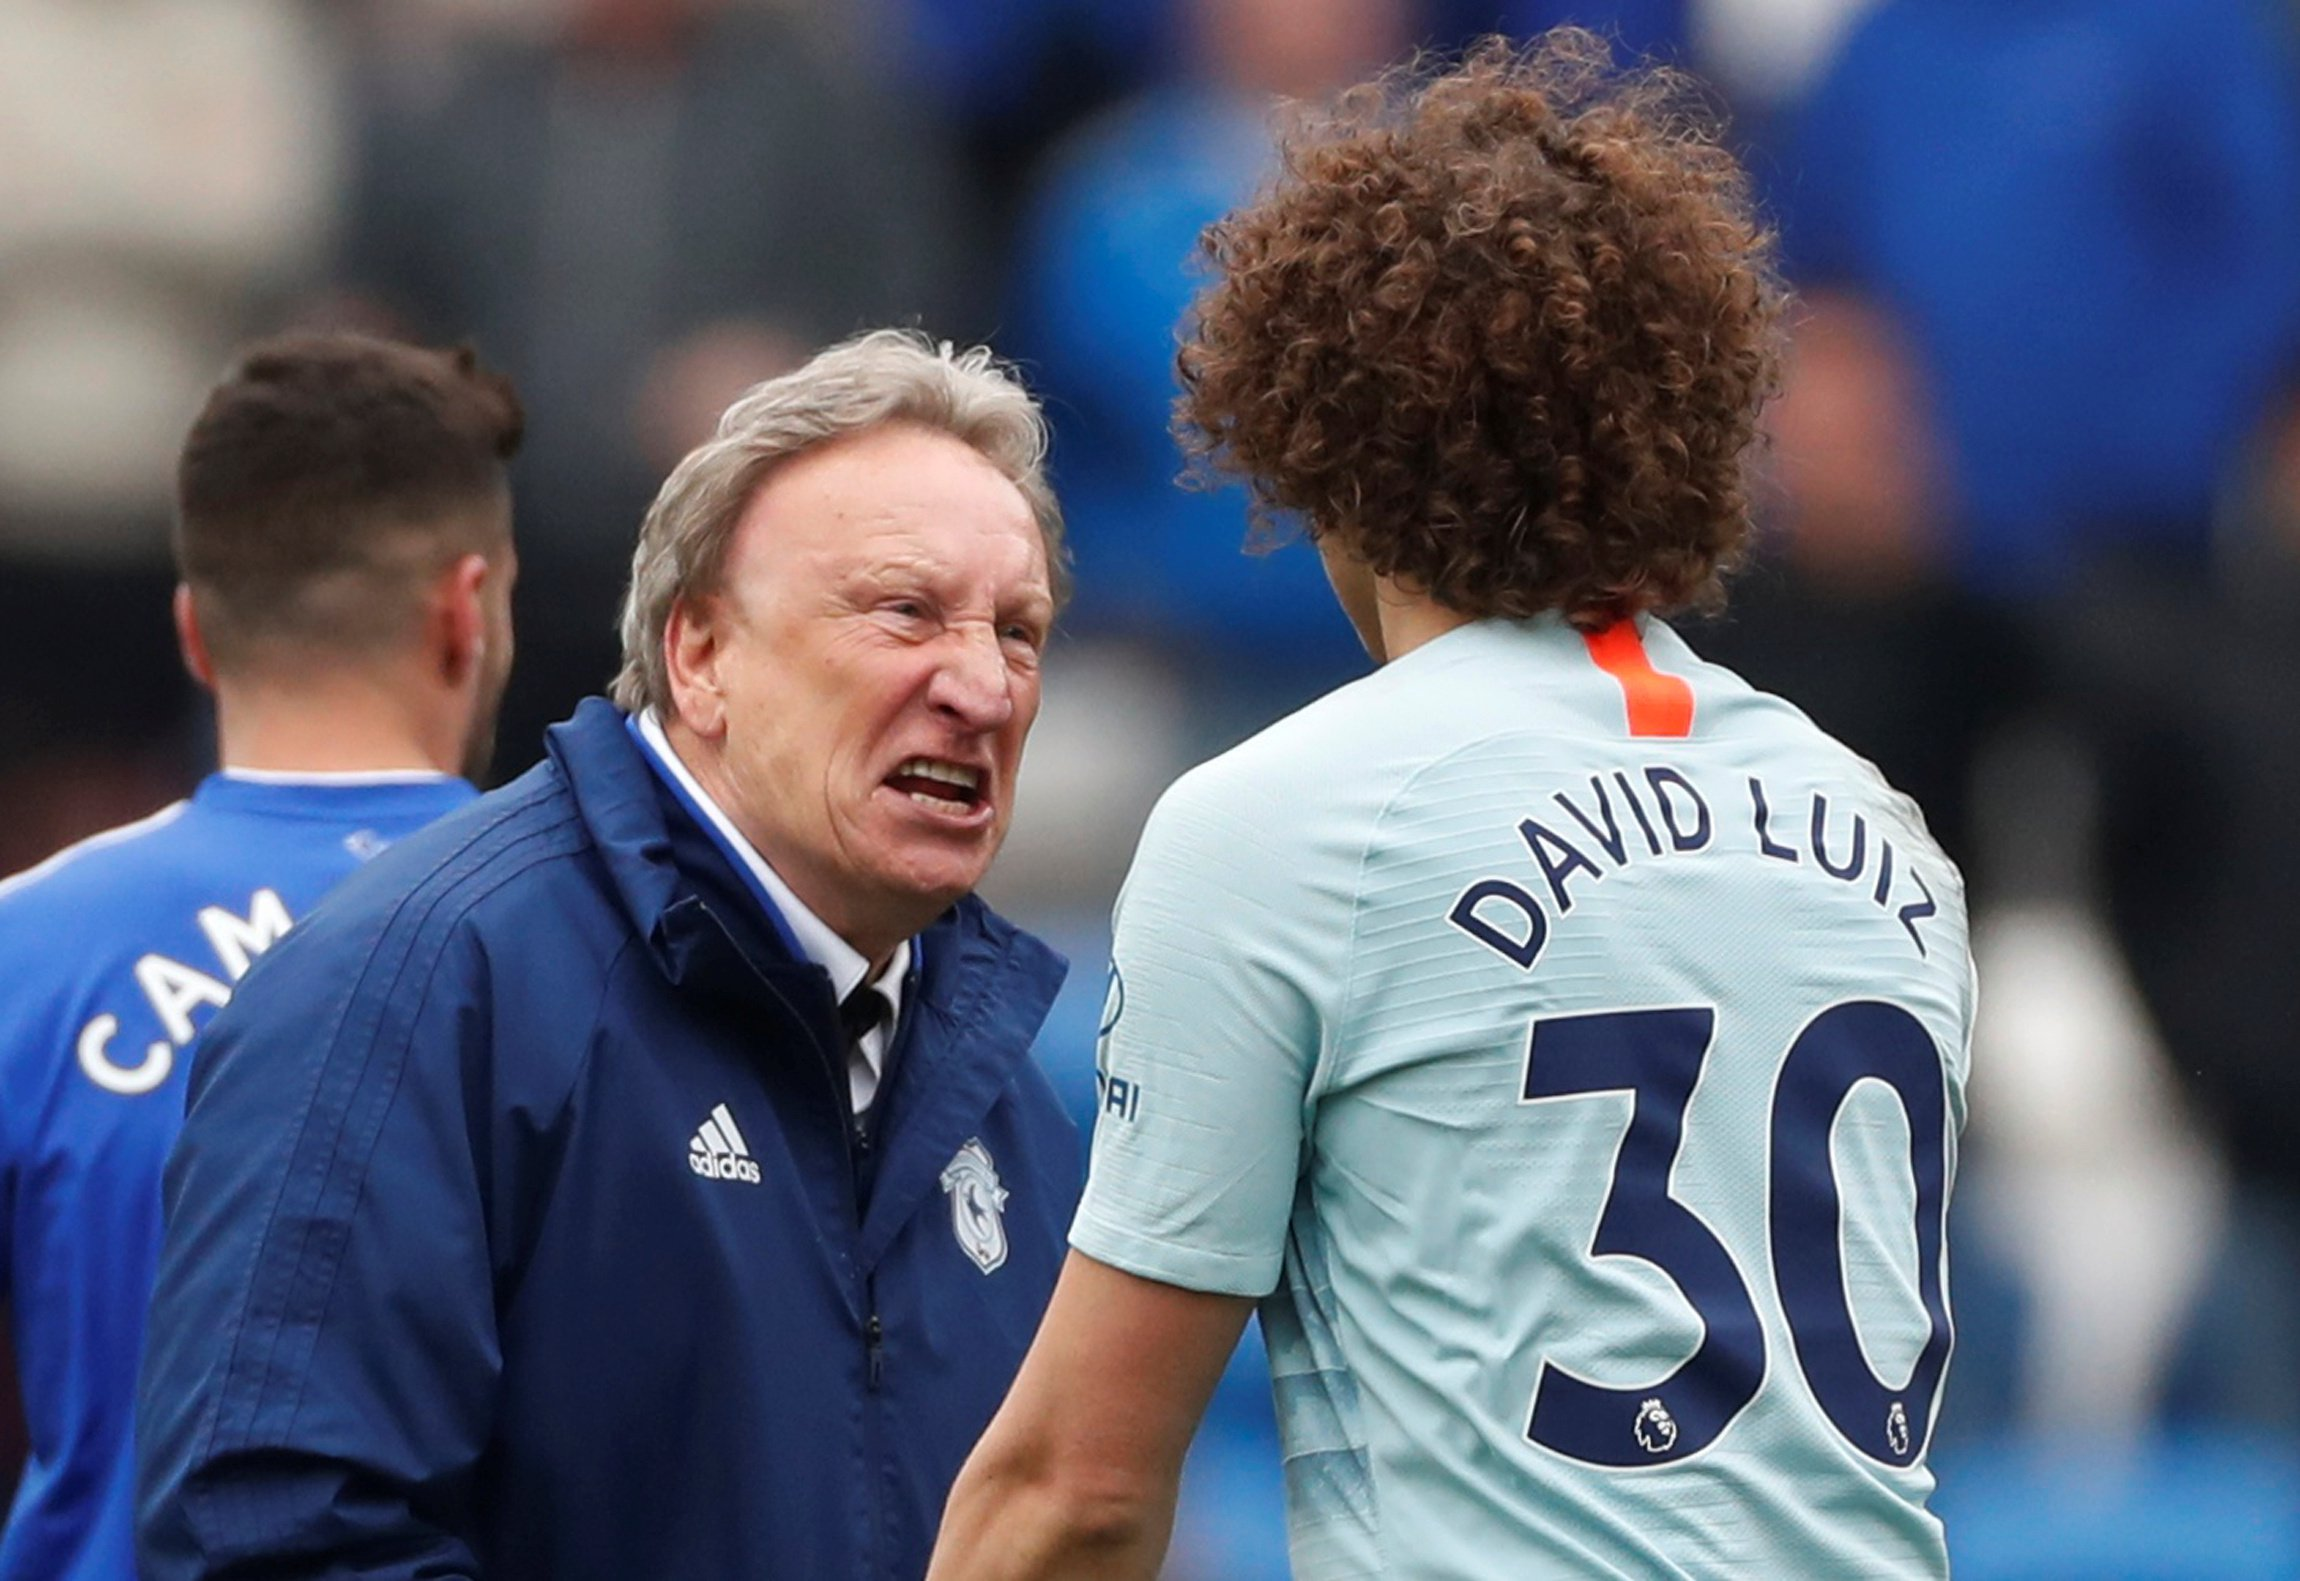 Furious Neil Warnock blasts 'criminal' officials after controversial Chelsea defeat